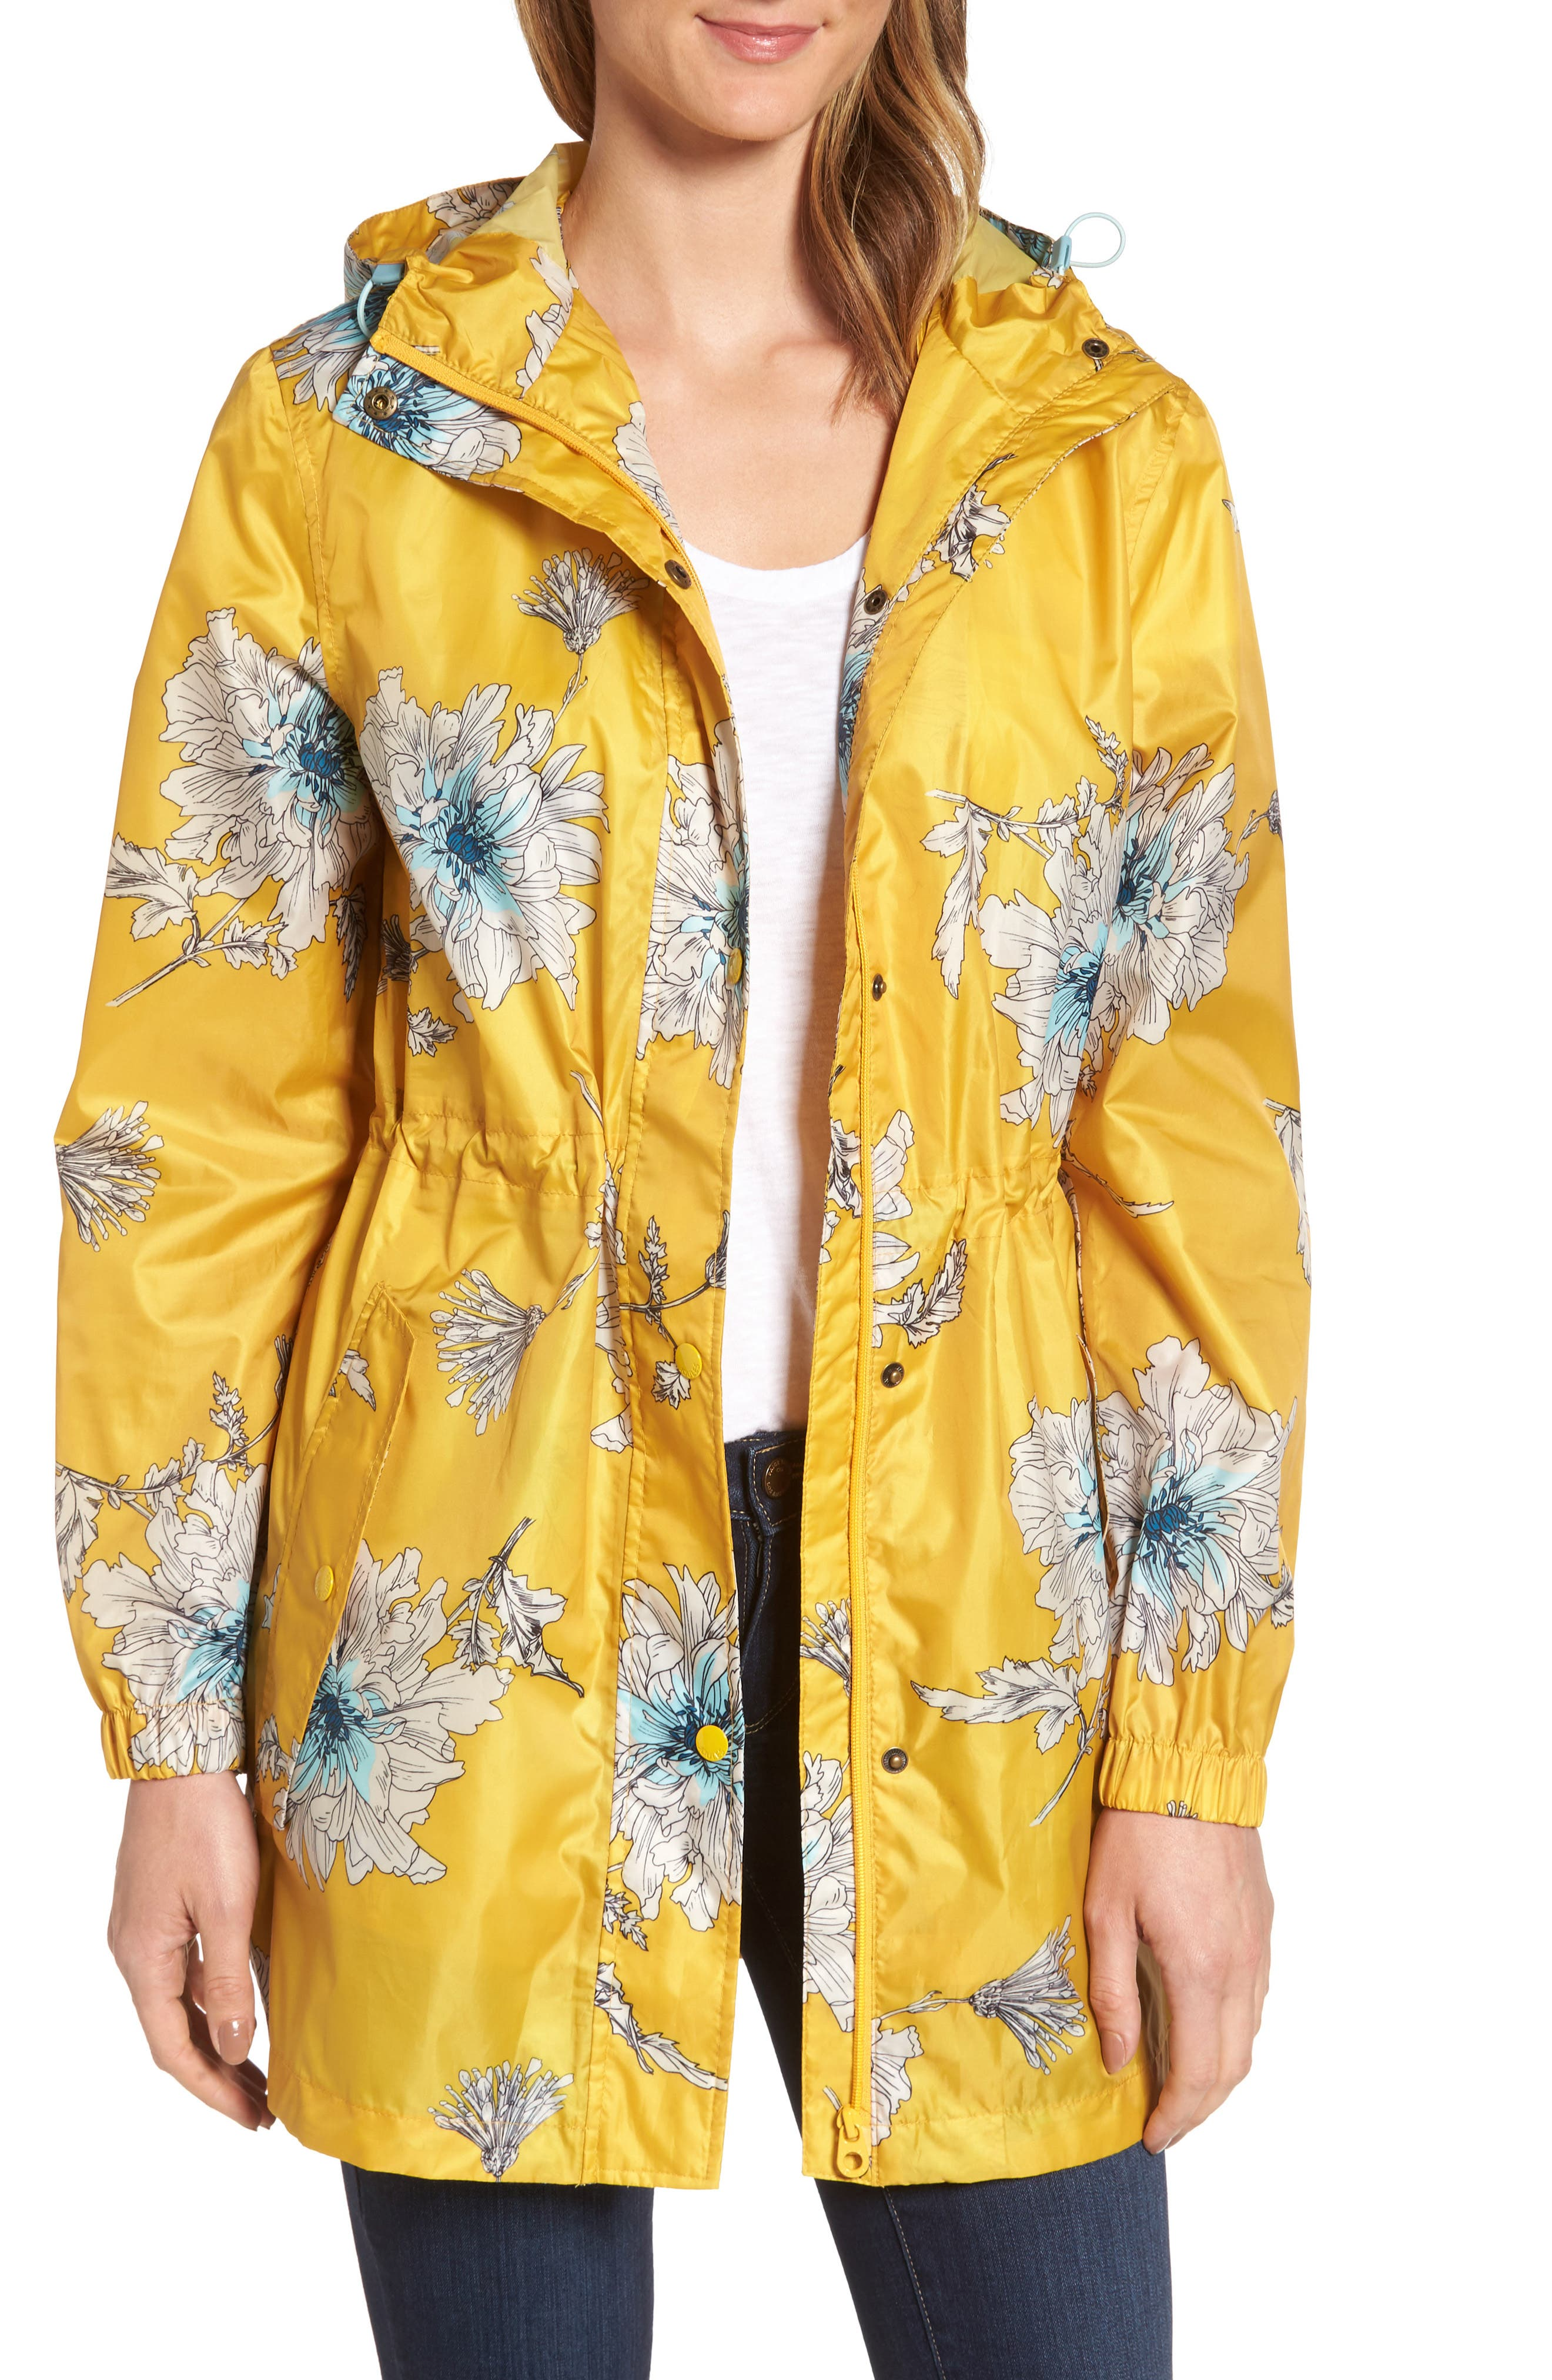 Right as Rain Packable Print Hooded Raincoat,                             Main thumbnail 1, color,                             Antique Gold Peony